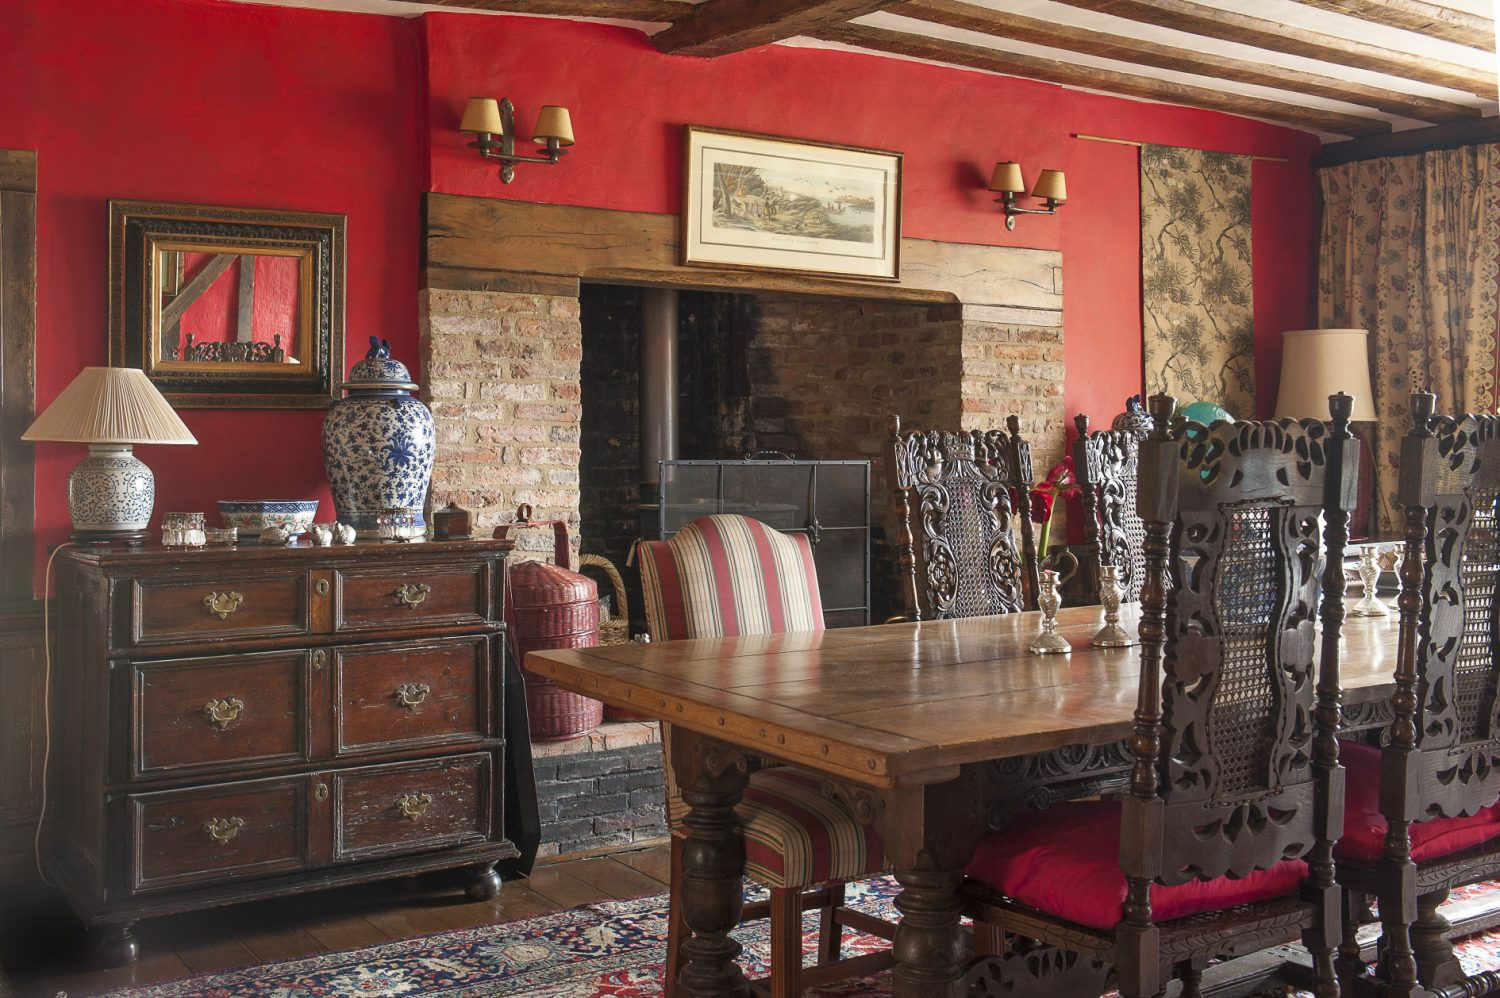 The dining room is in fact the oldest in the house